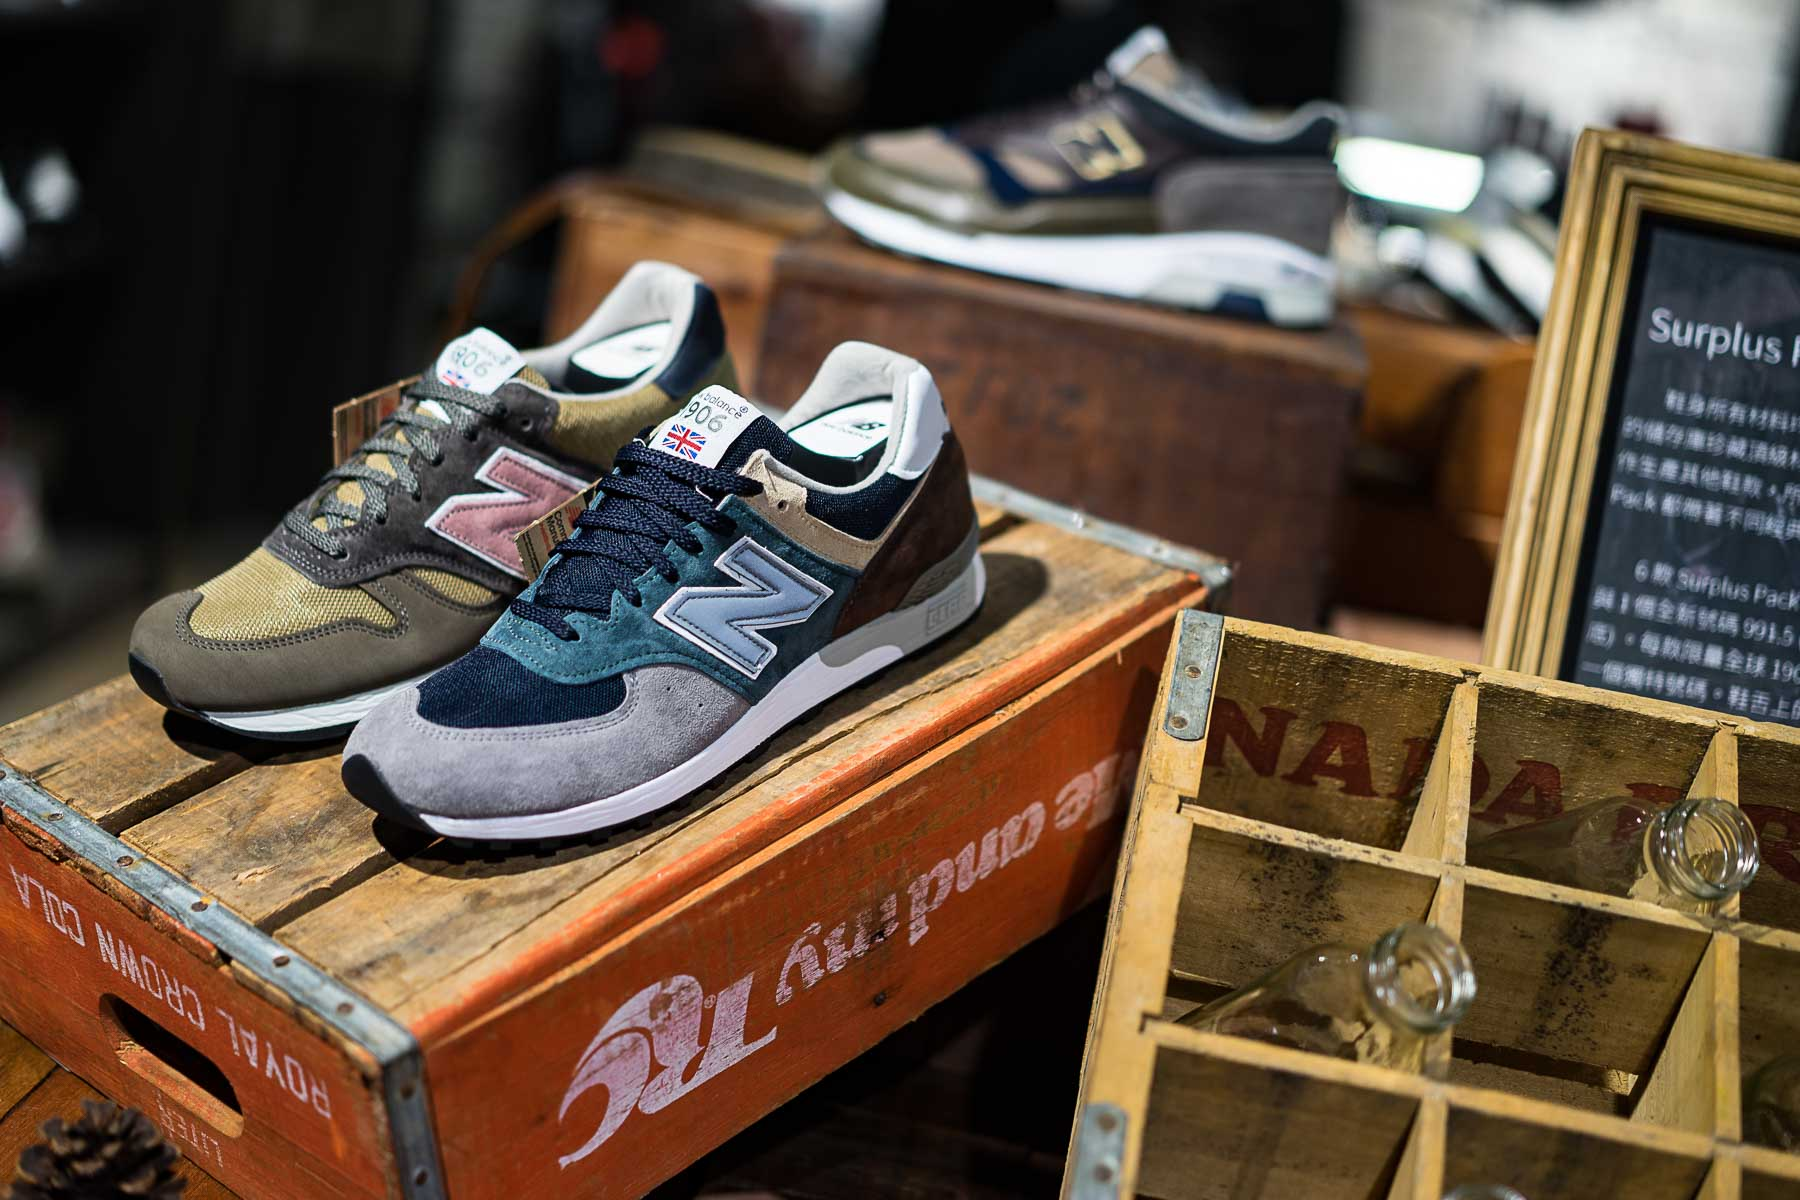 new-balance-nb-187-concept-store-16